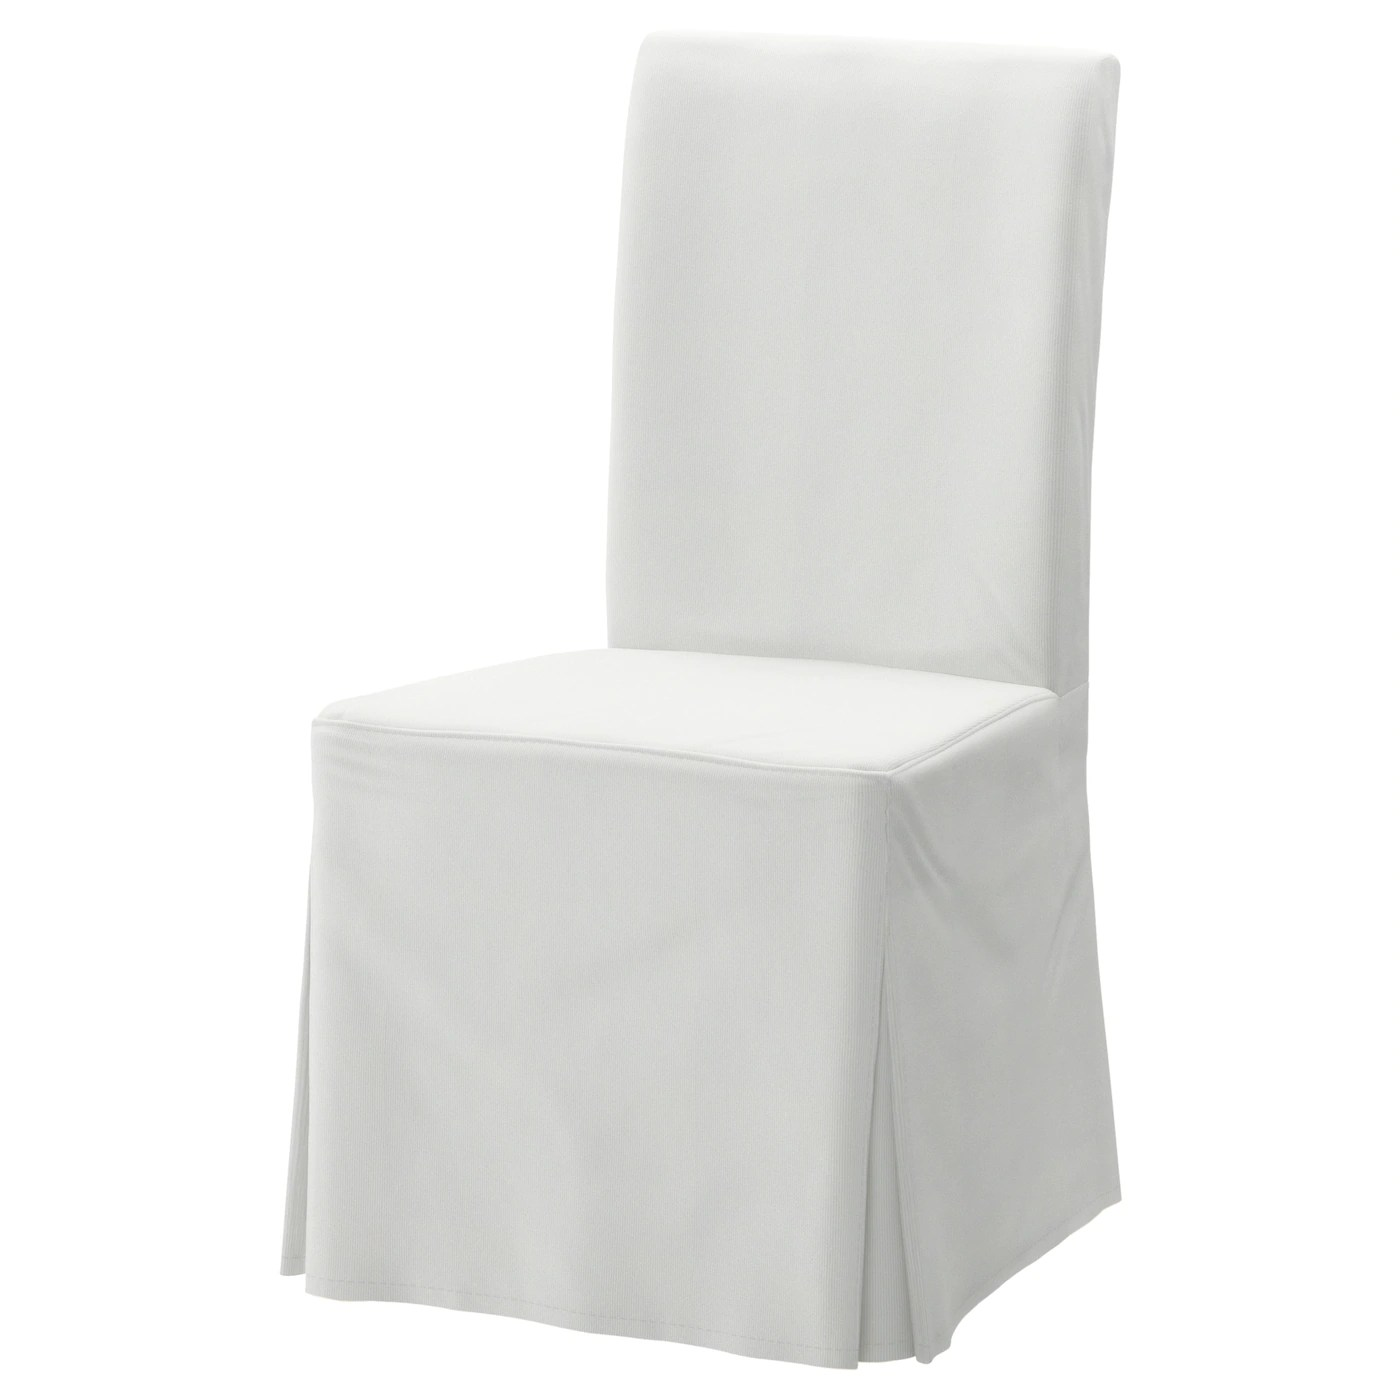 ebay uk christmas chair covers tranquil ease lift model 7051 3 dining ikea henriksdal cover long